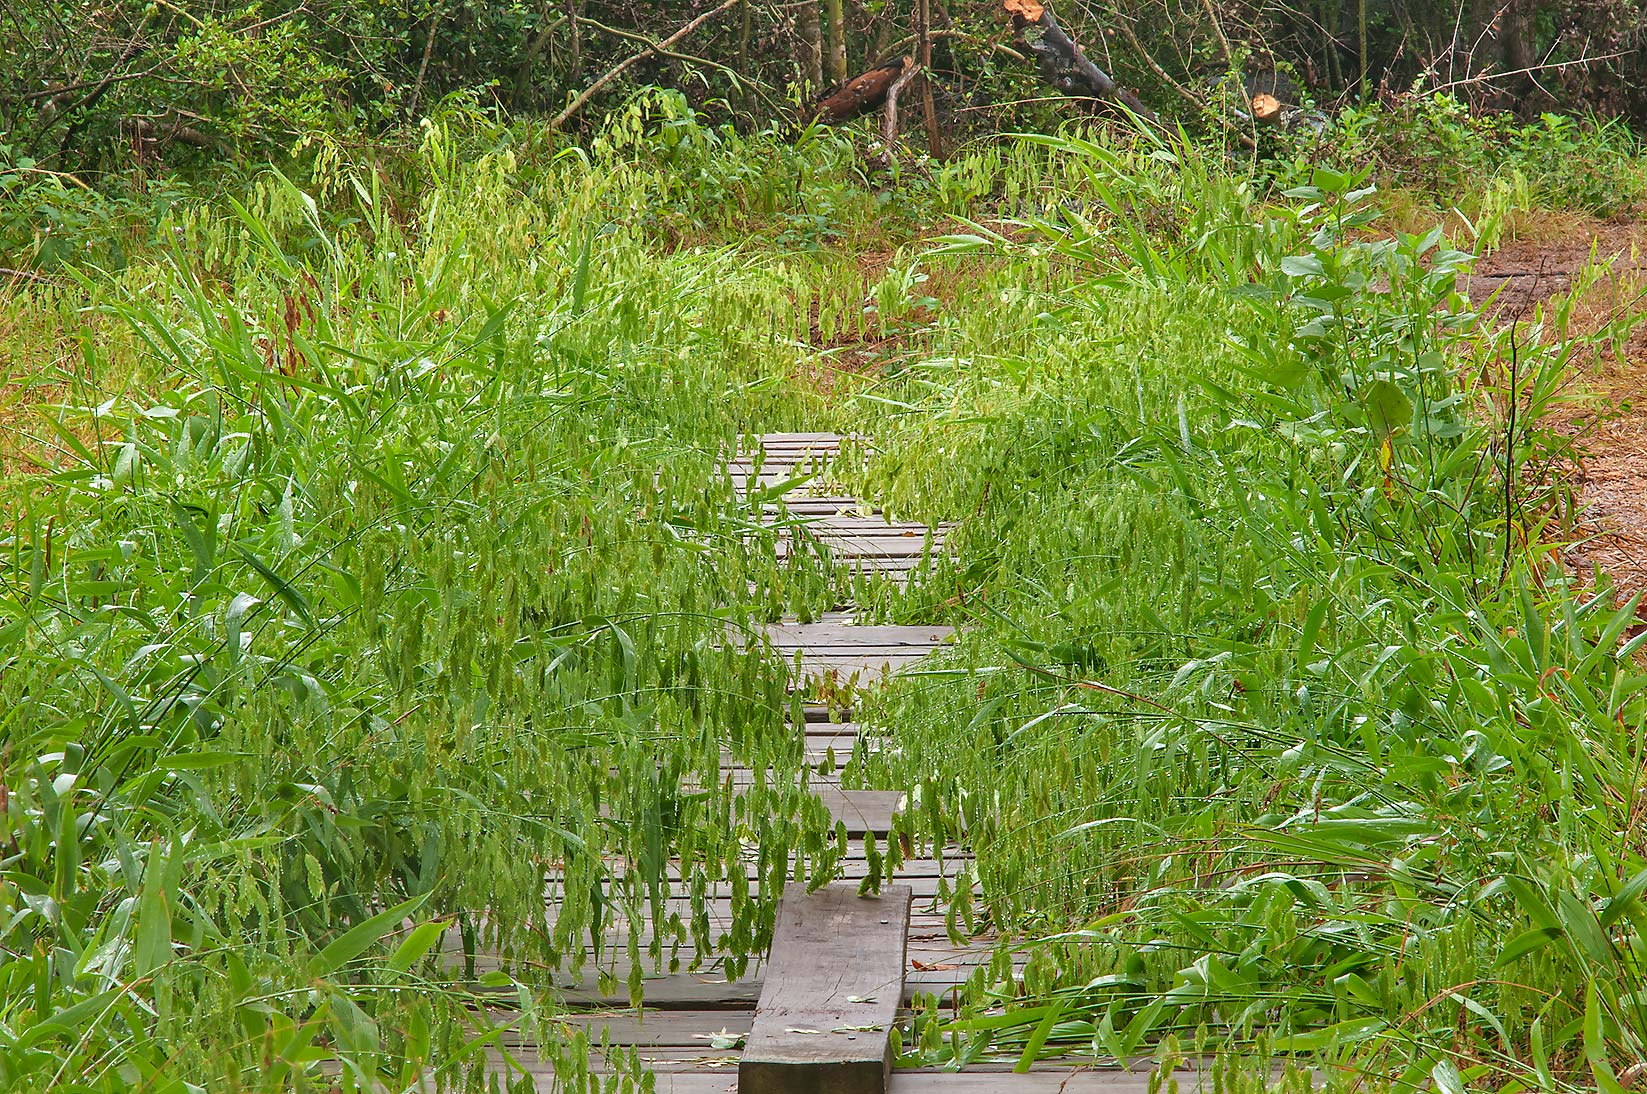 Boardwalk overgrown by wood oats (Chasmanthium...Creek Park. College Station, Texas